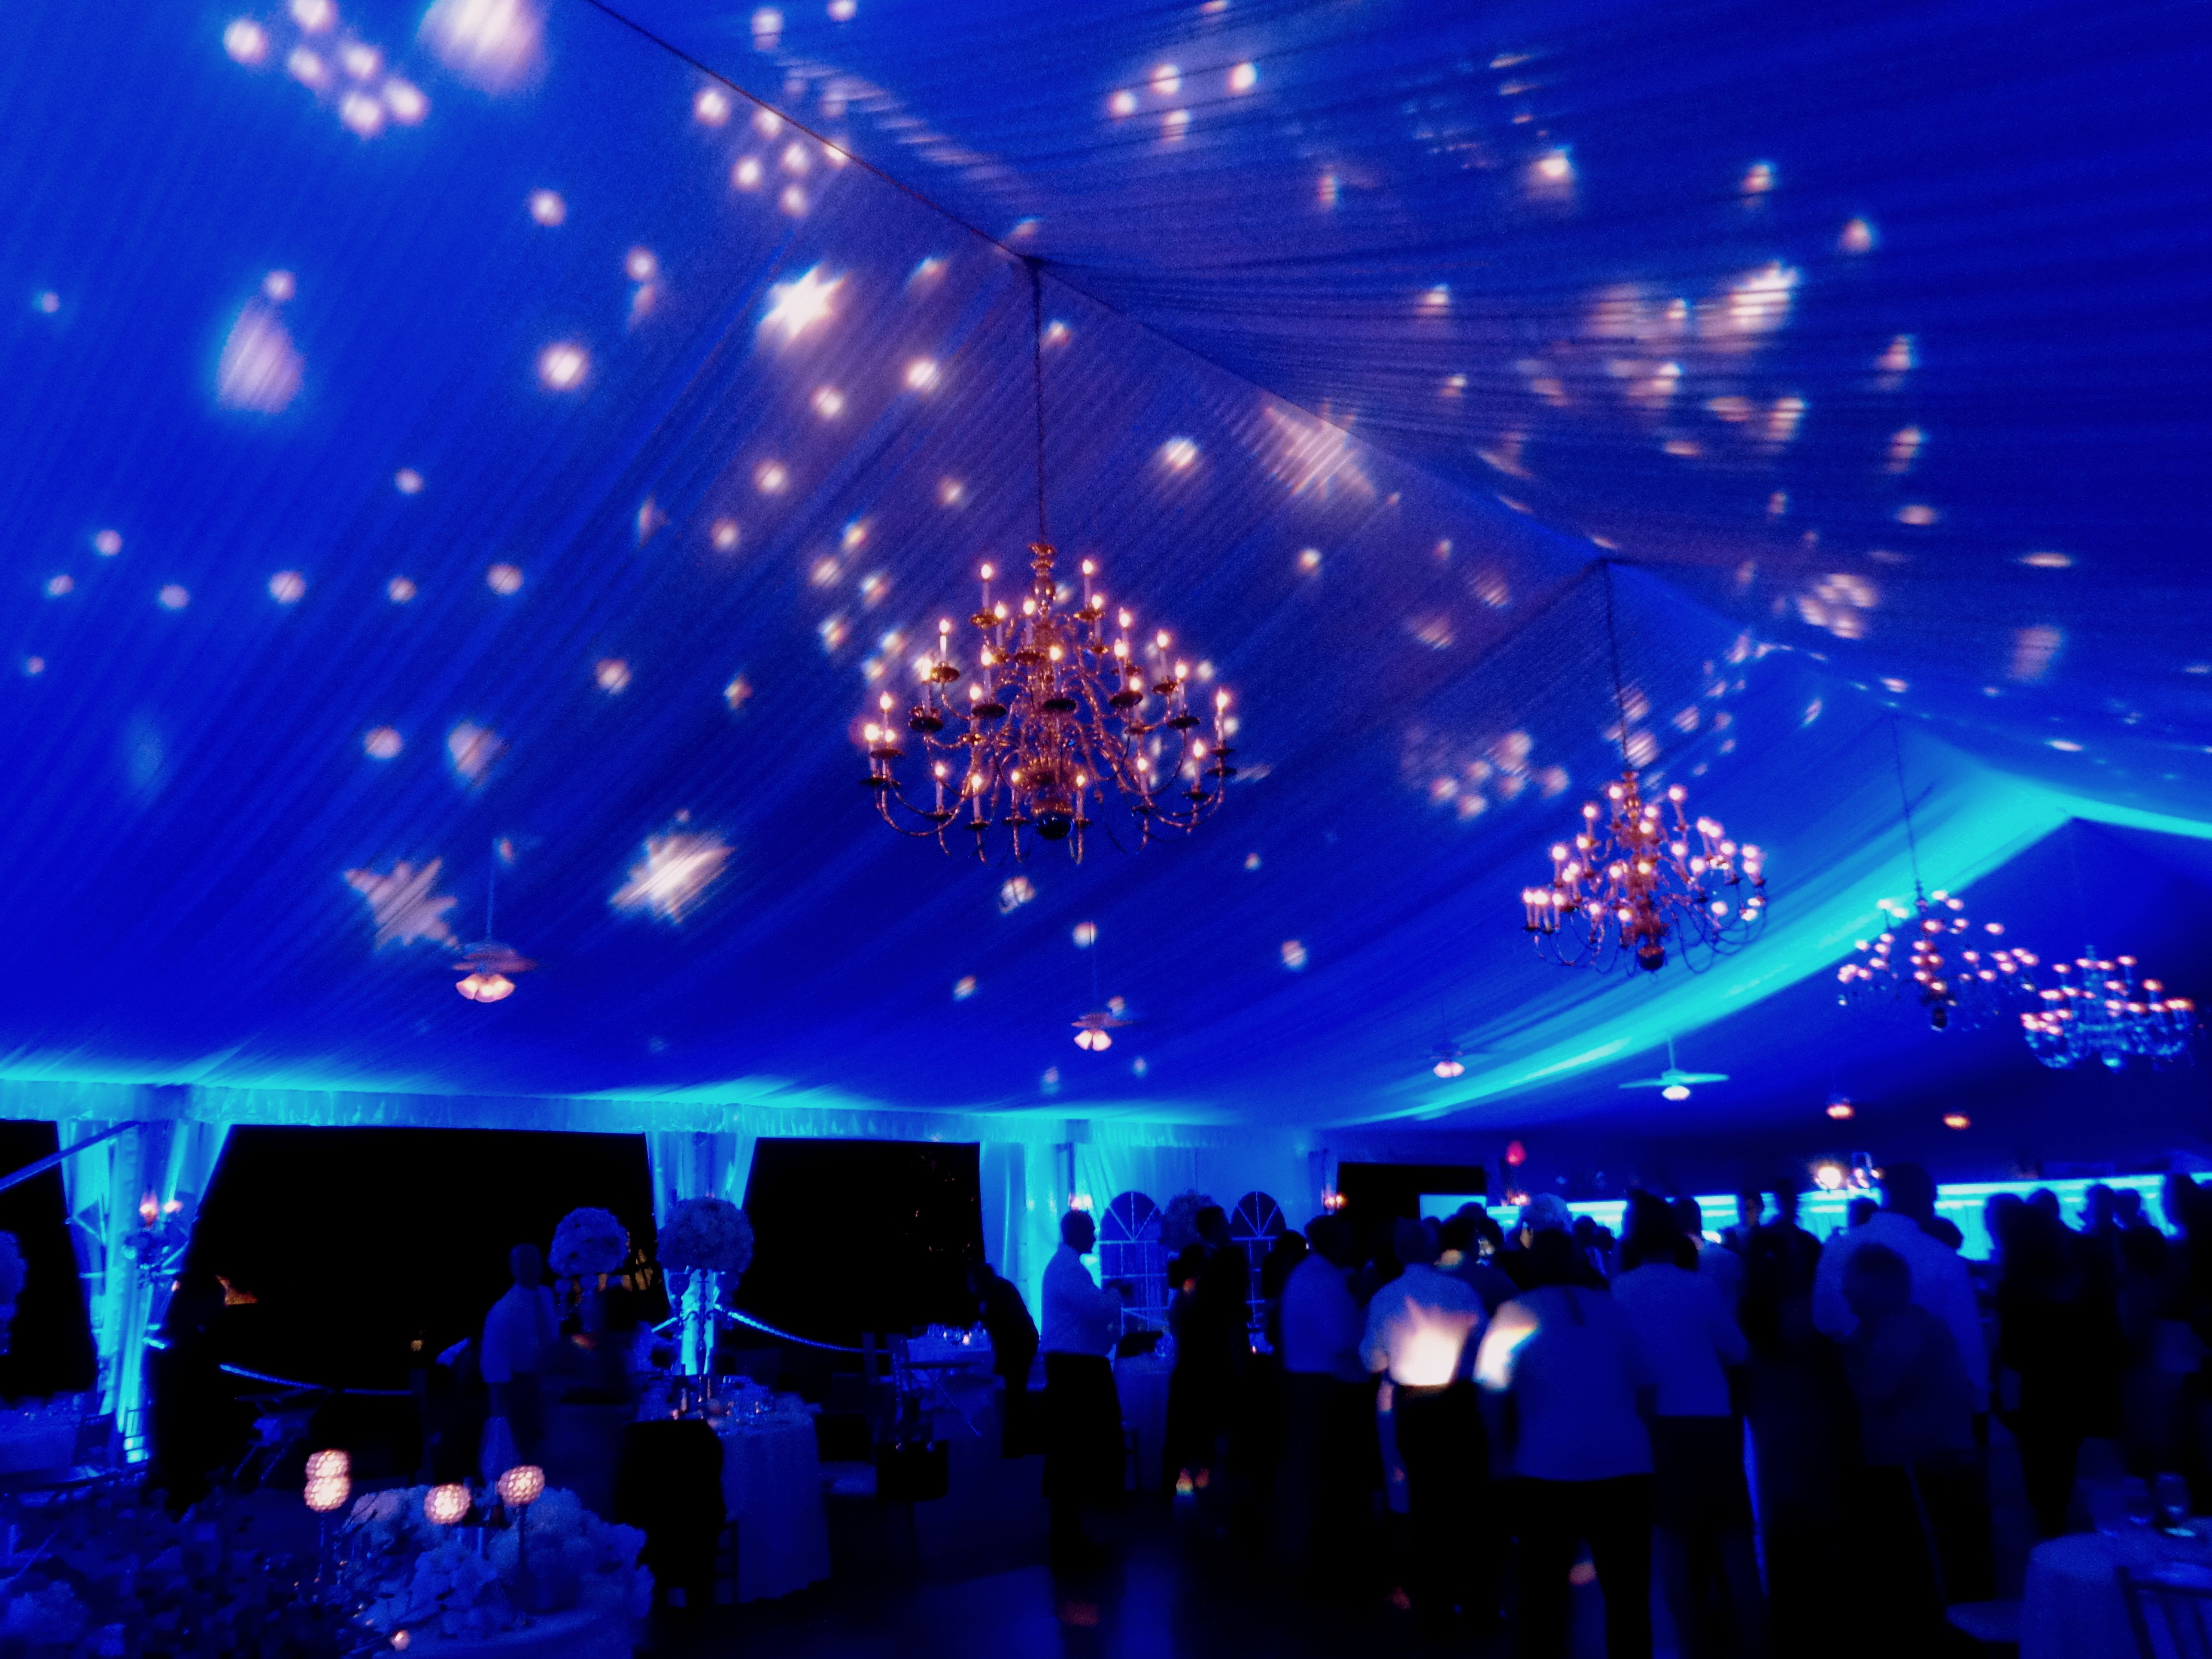 Starry Night Ceiling projections with blue lighting in the ...